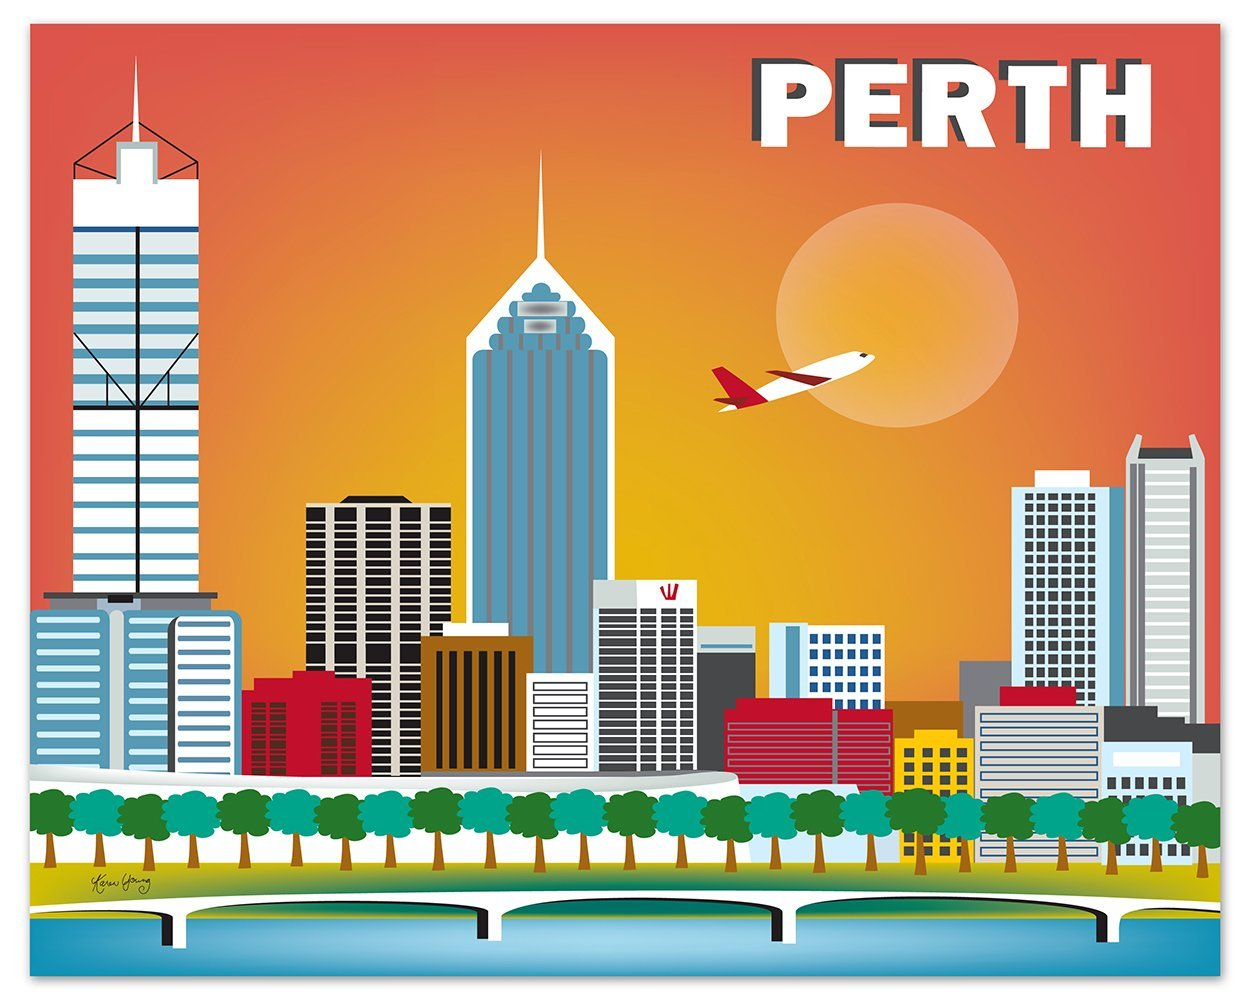 Perth, Australia Print - Retro Inspired Travel Wall Art for Home and Office - art sizes: 8 x 10, 11 x 14, 16 x 20, 24 x 30, 36 x 45